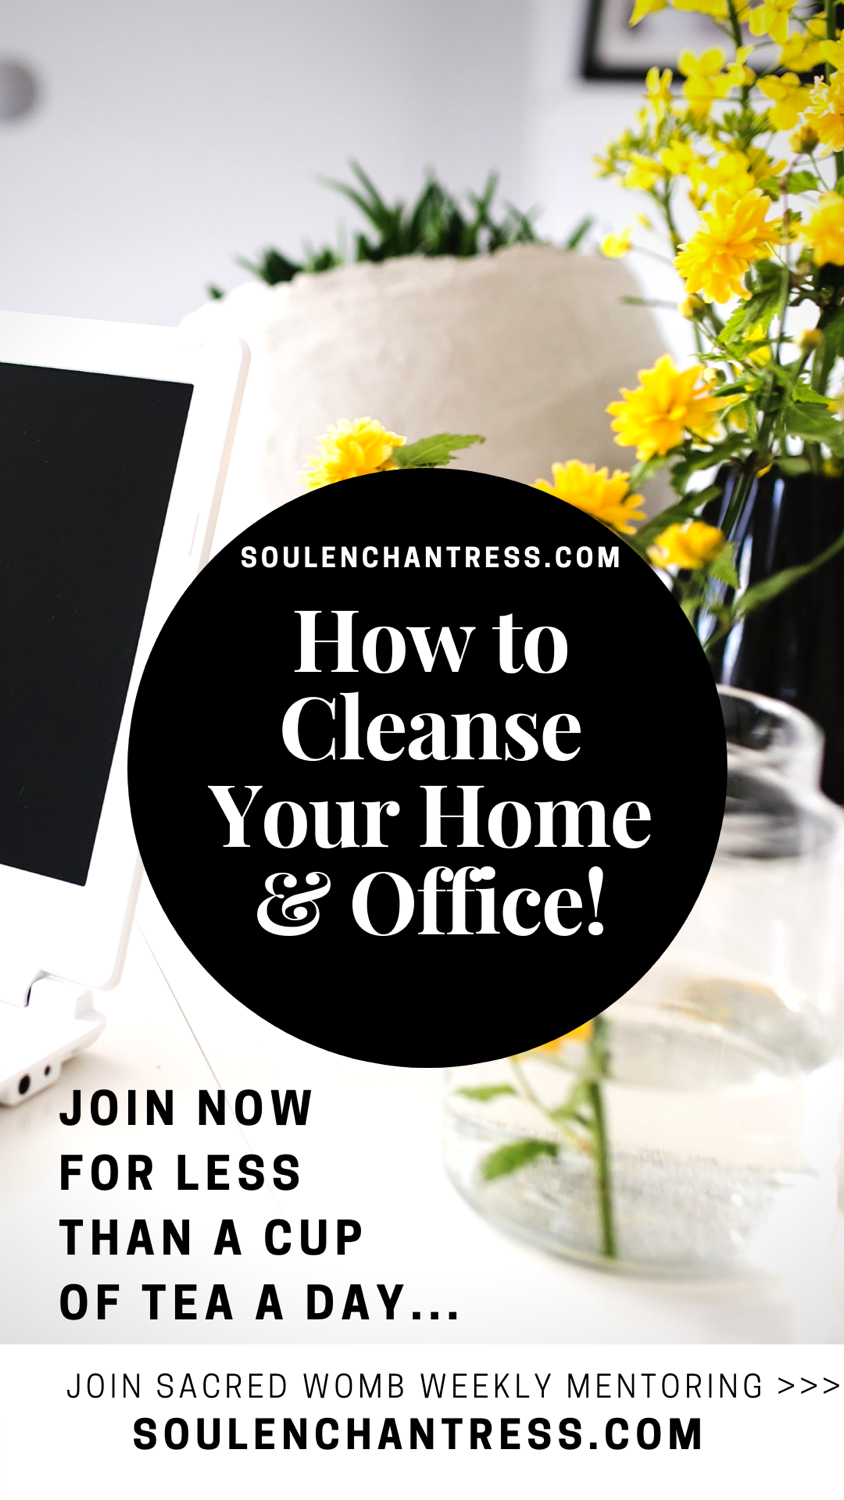 how to clear energy, cleansing your home and office, blessing your home and office, soul enchantress